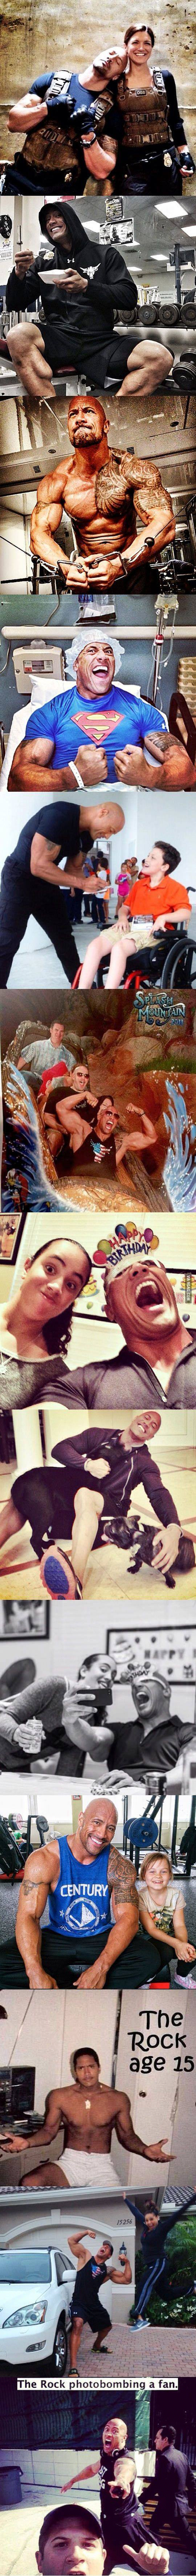 The Rock is awesome